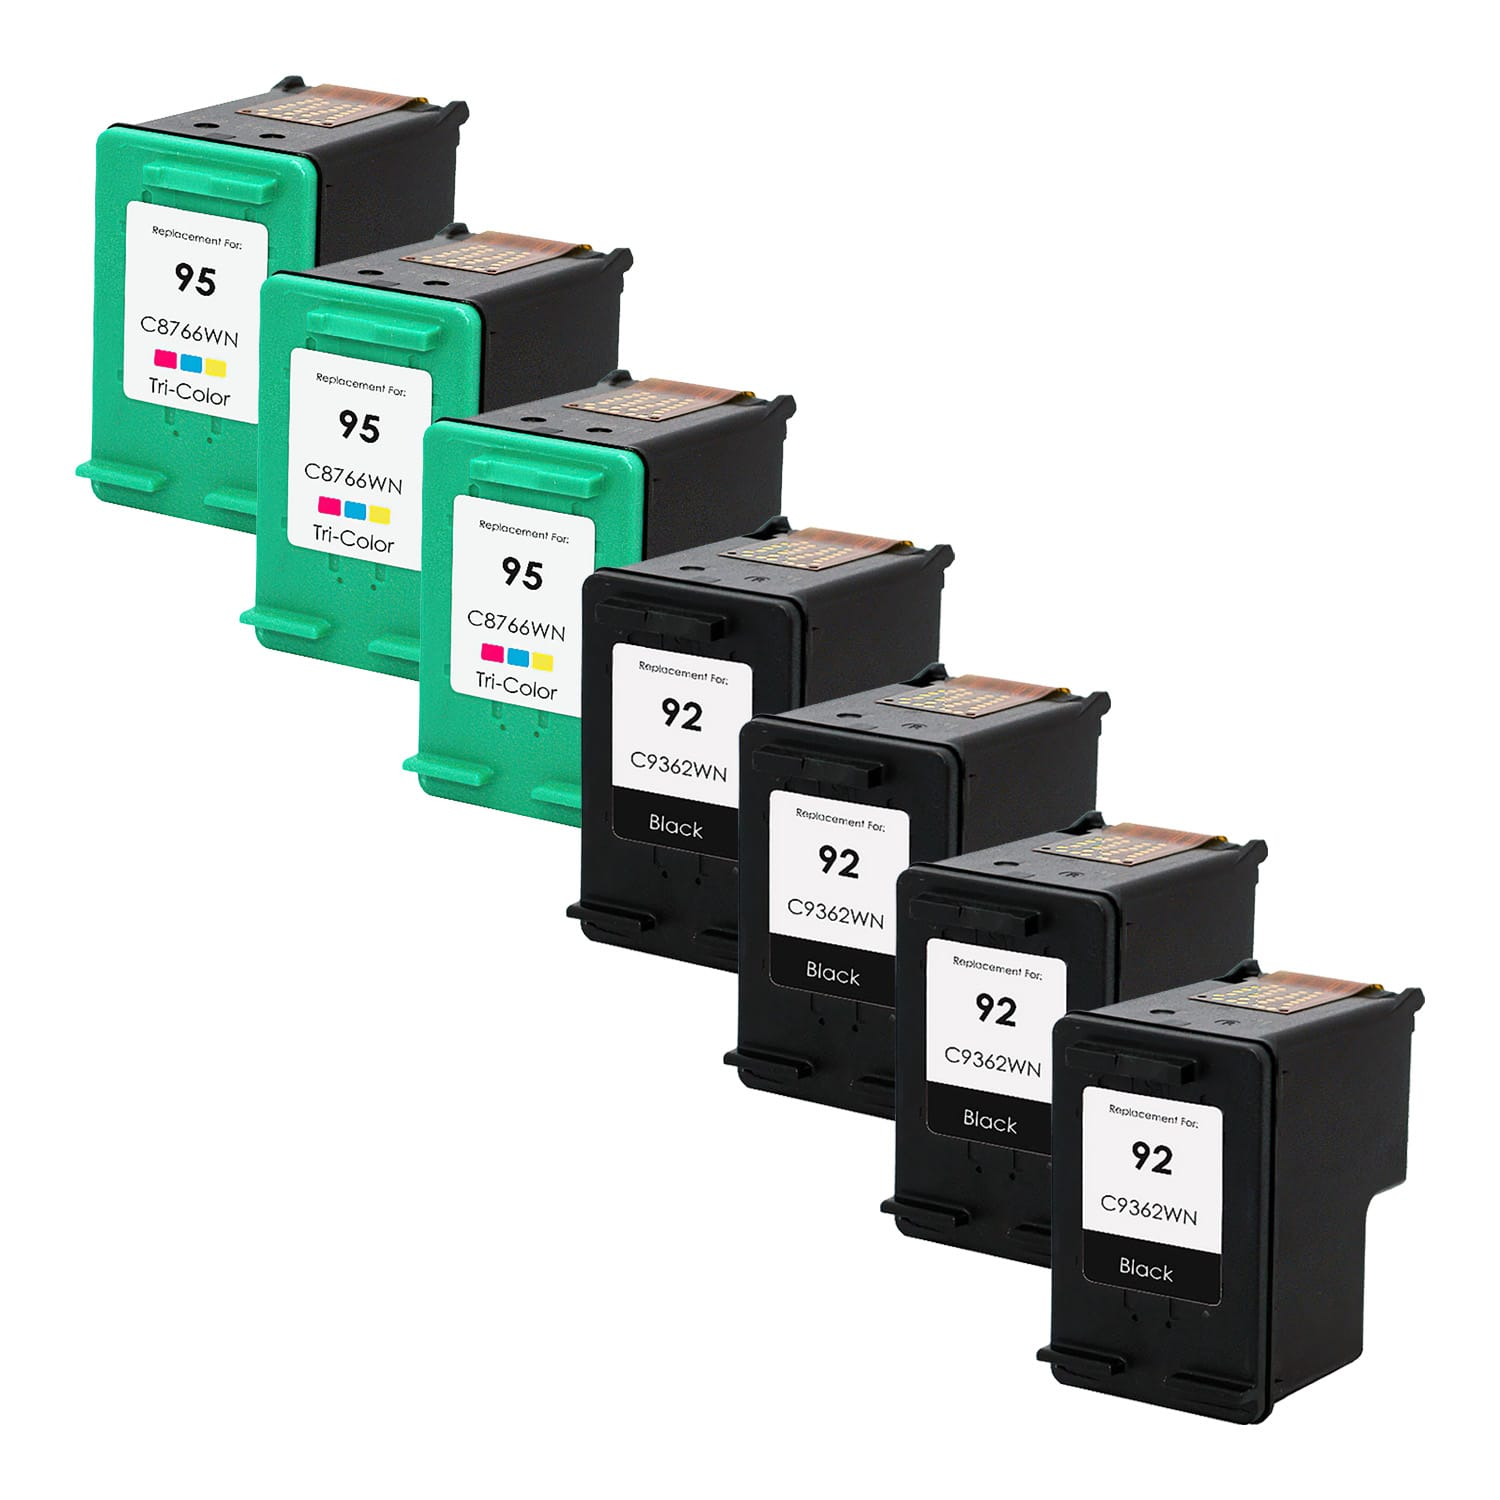 Remanufactured HP 95-92 Inkjet Pack - 7 Cartridges